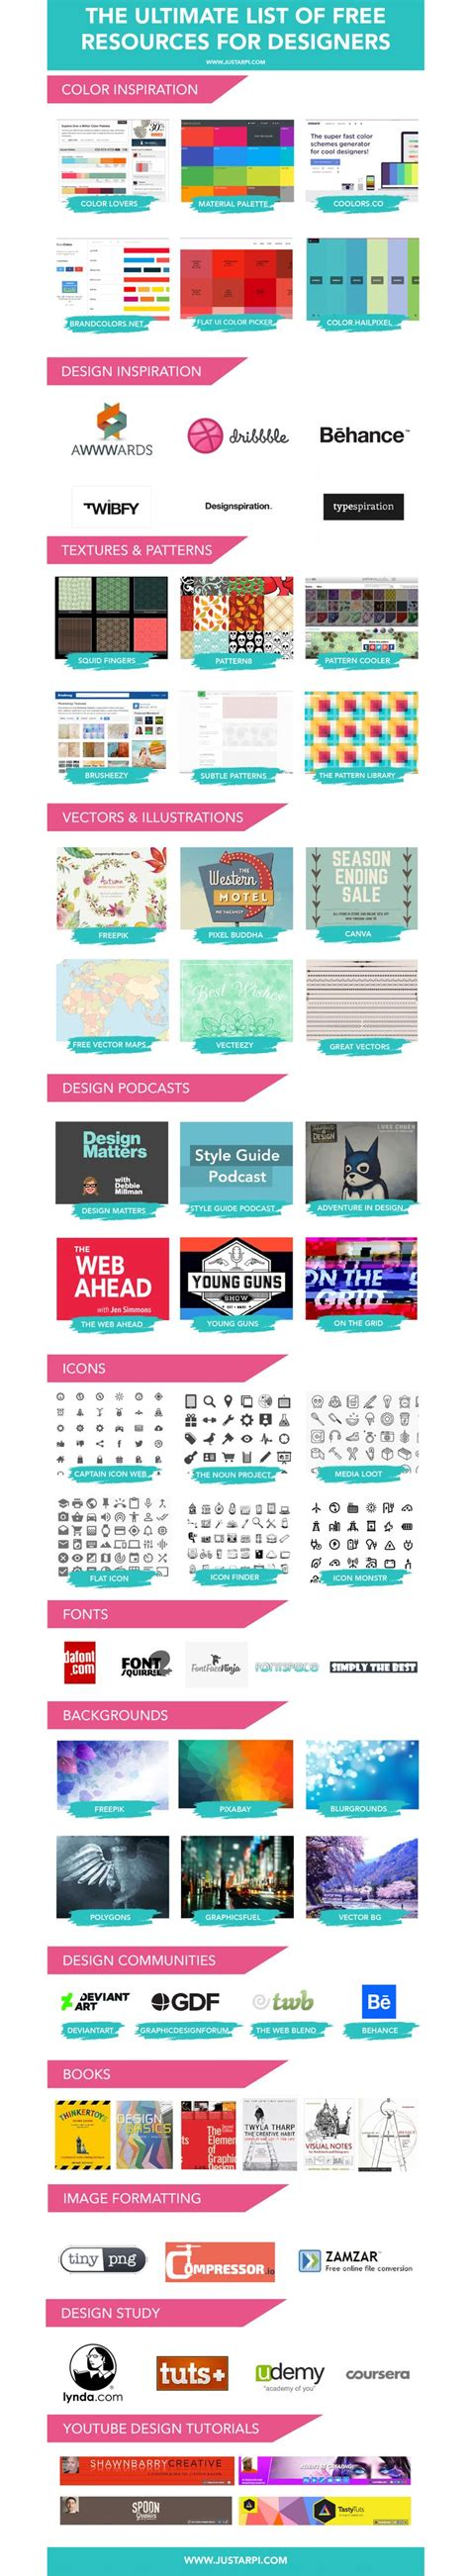 free design resources business infographic ultimate free design resources for